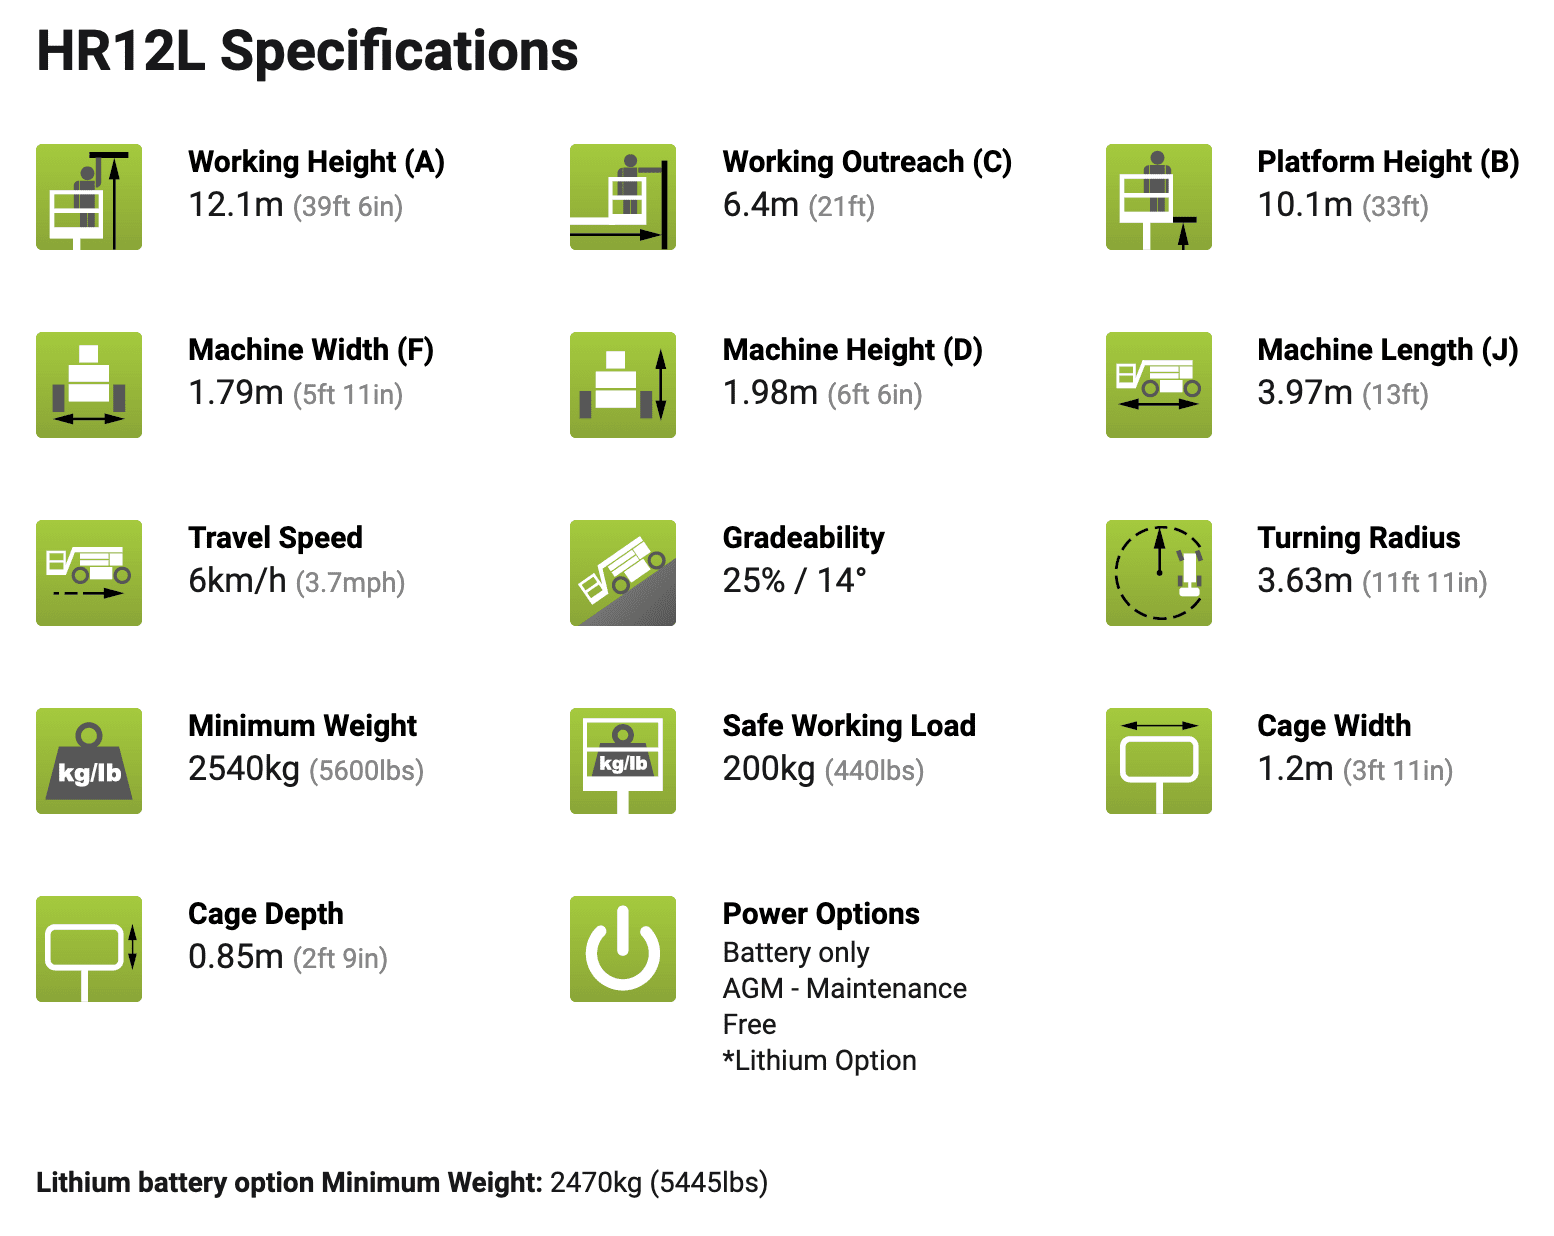 specifications HR12L